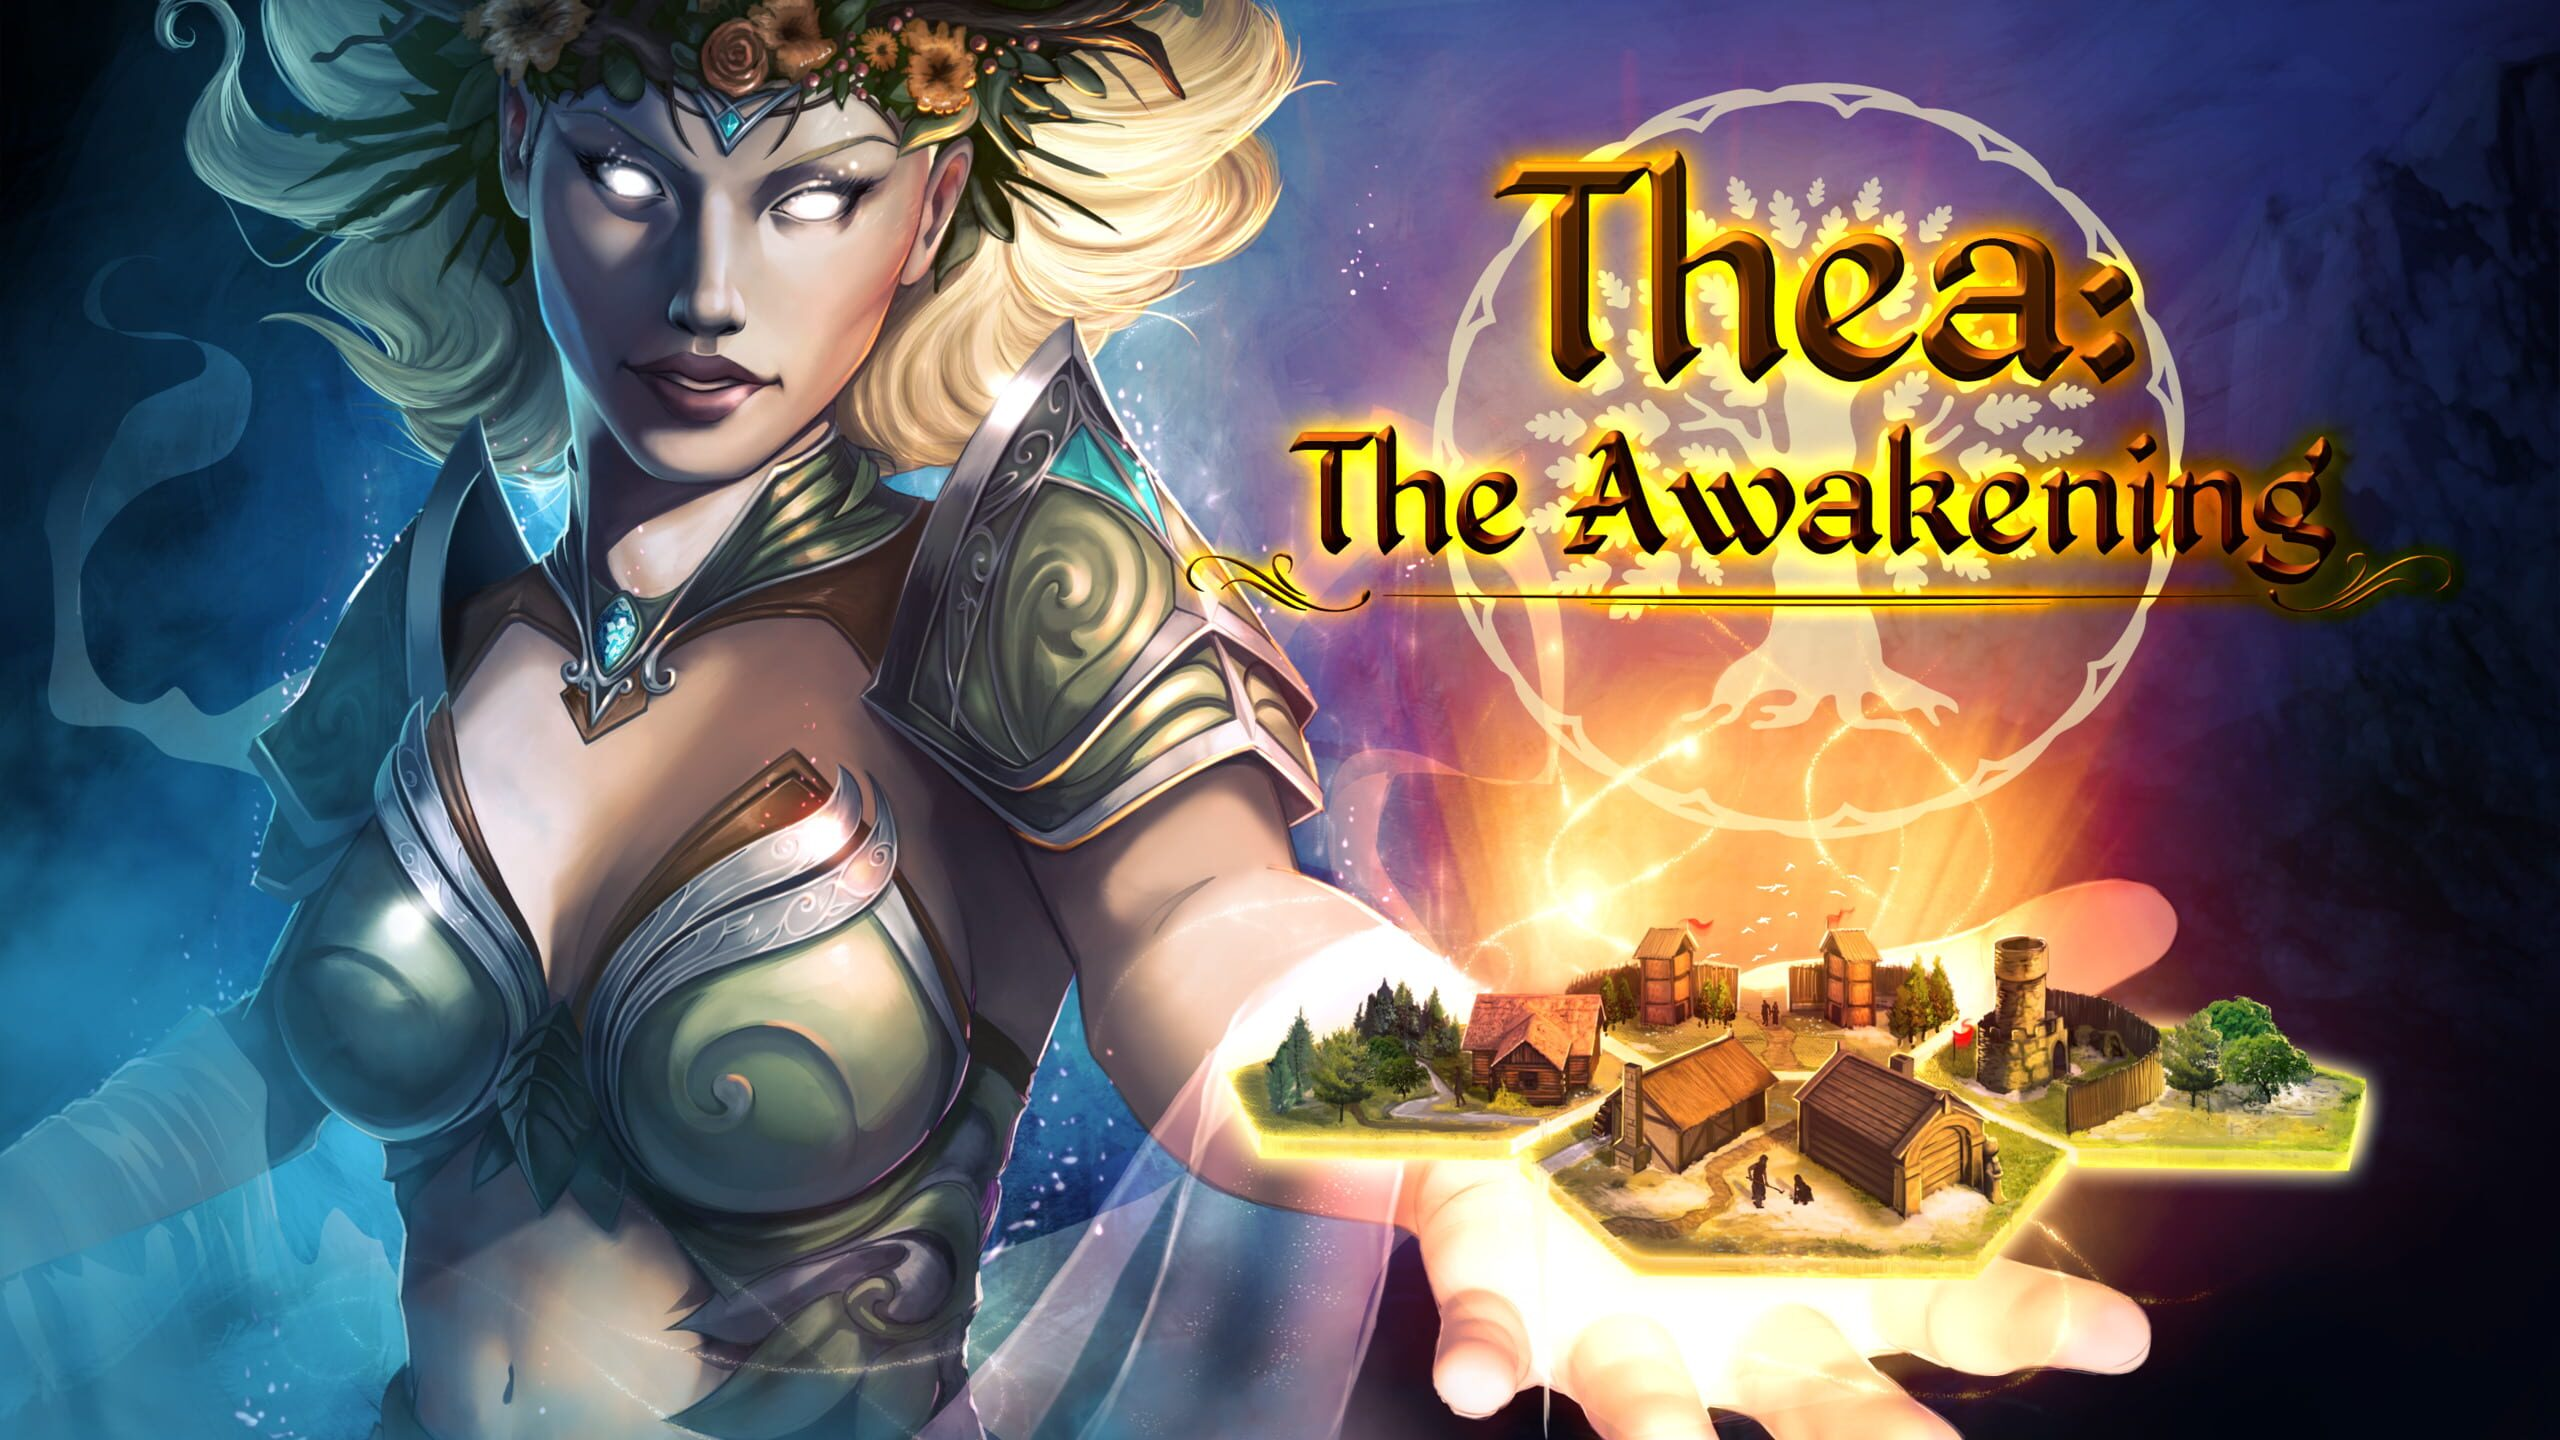 game cover art for Thea: The Awakening